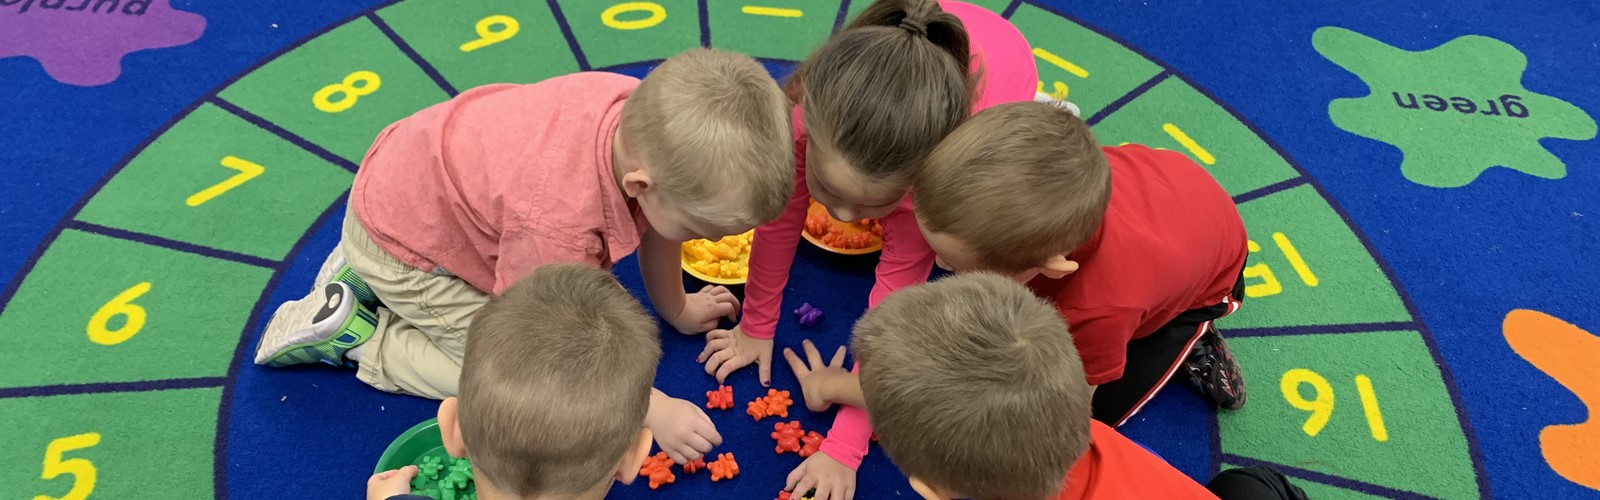 Preschoolers sorting on carpet